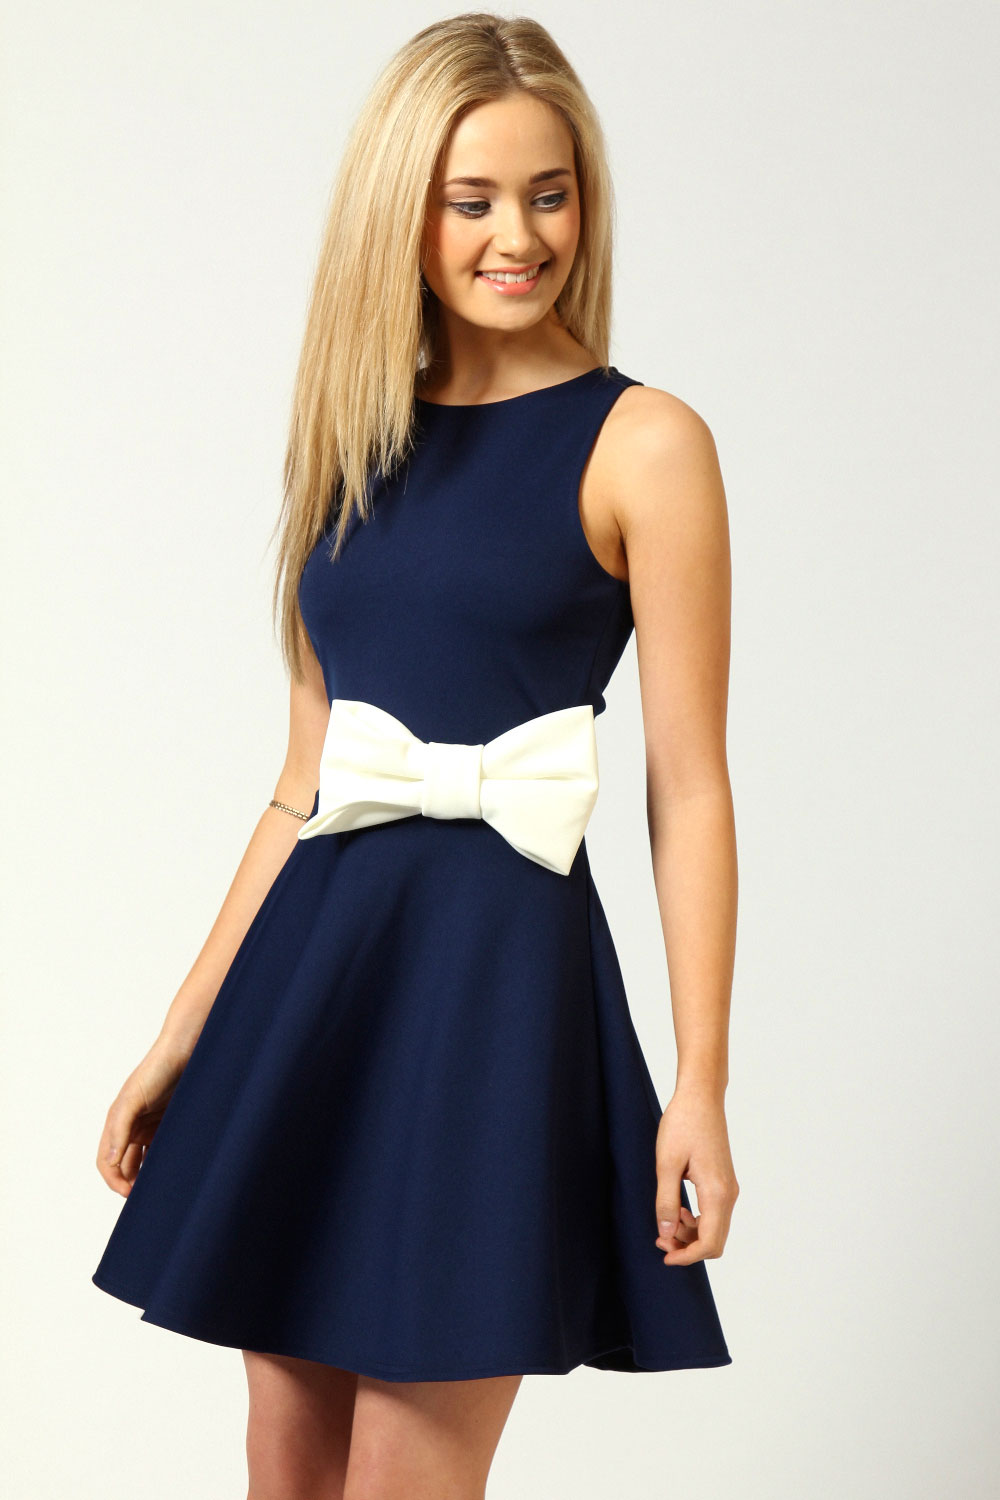 Boohoo Penelope Skater Dress with Bow Detail | eBay